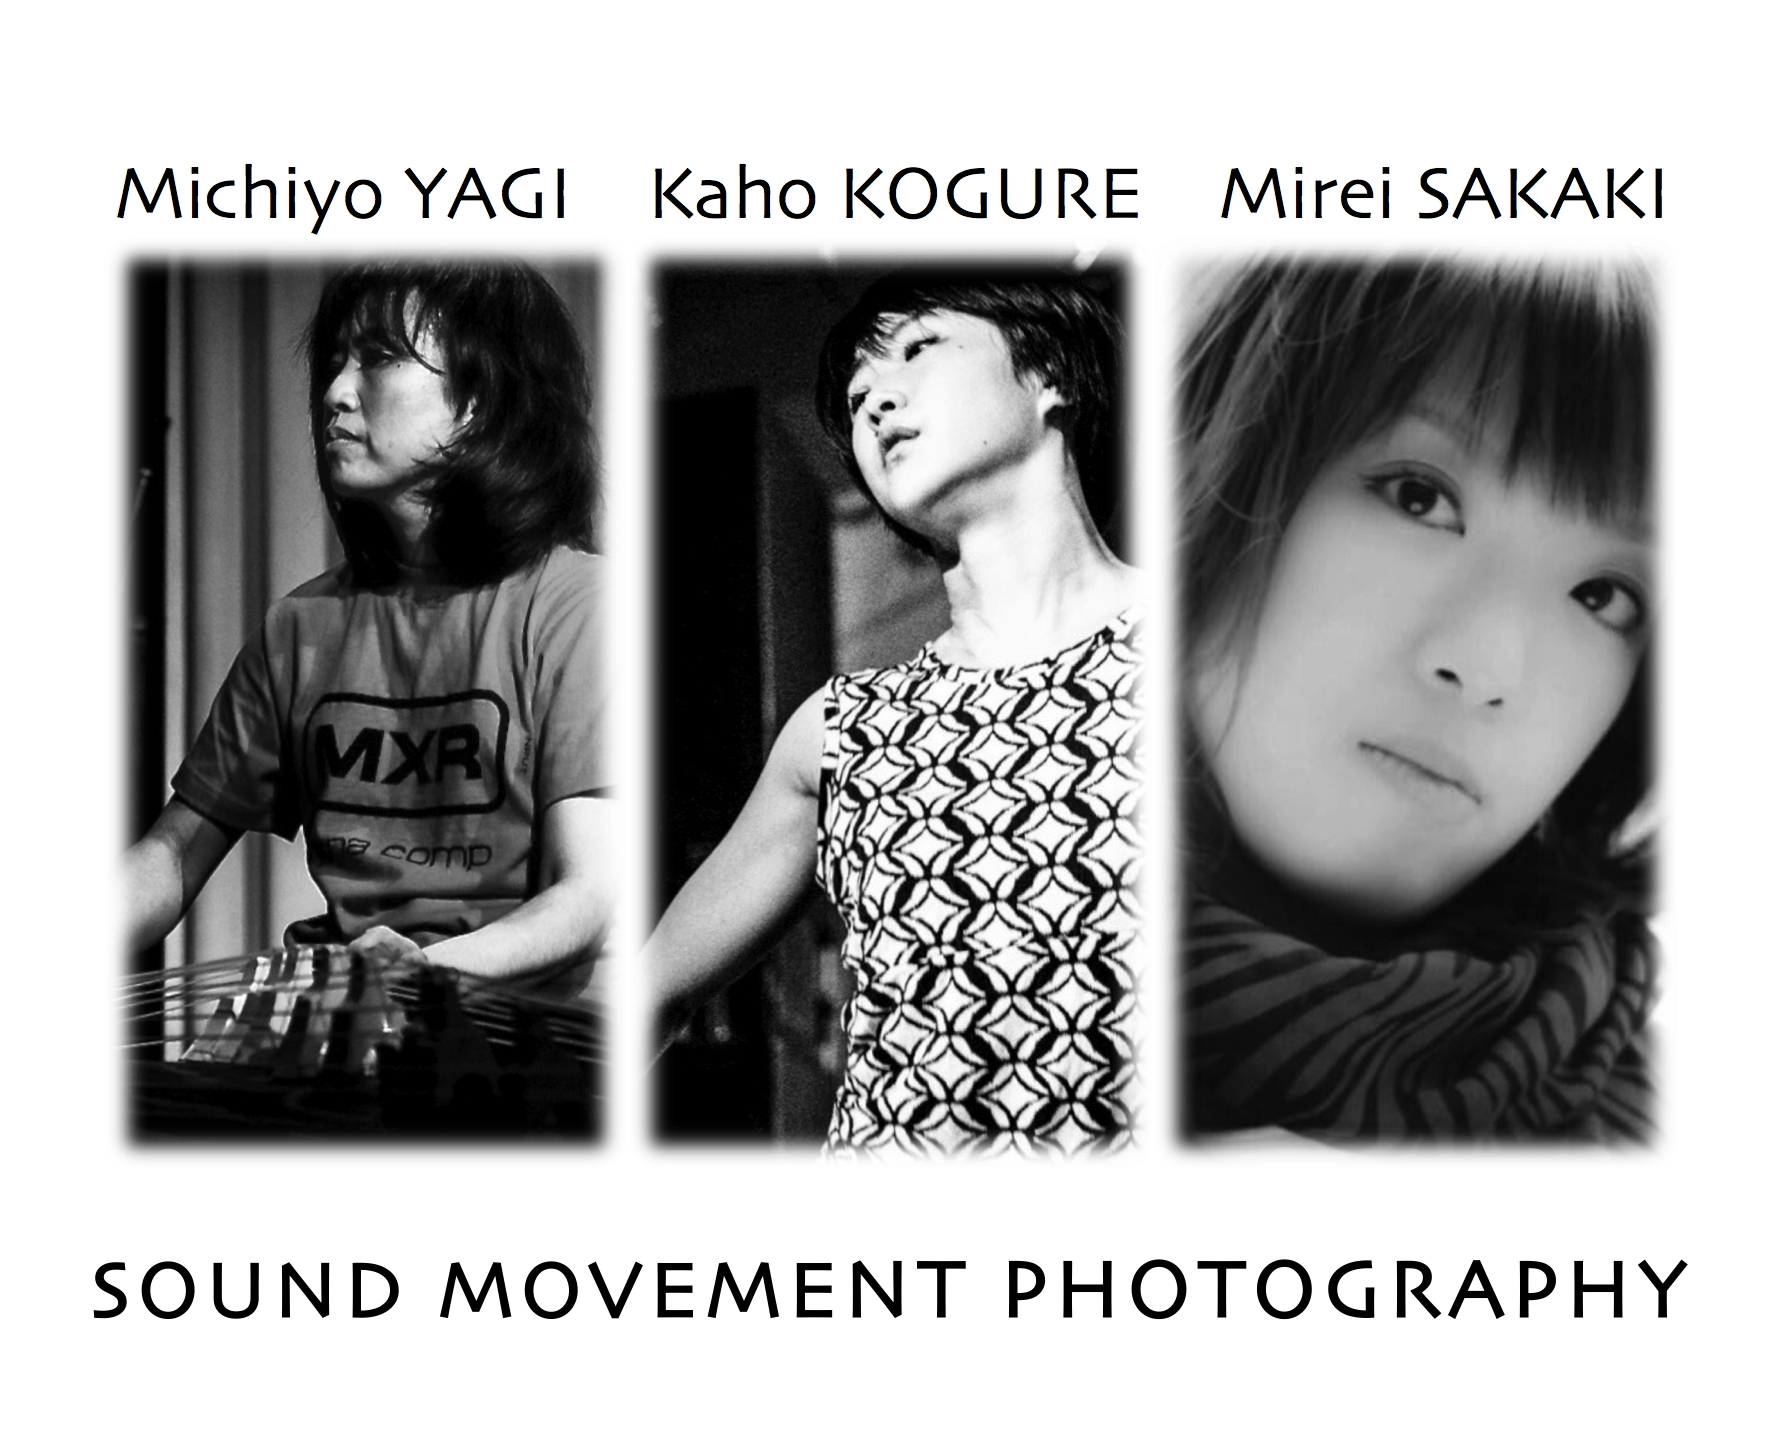 SOUND MOVEMENT PHOTOGRAPHY